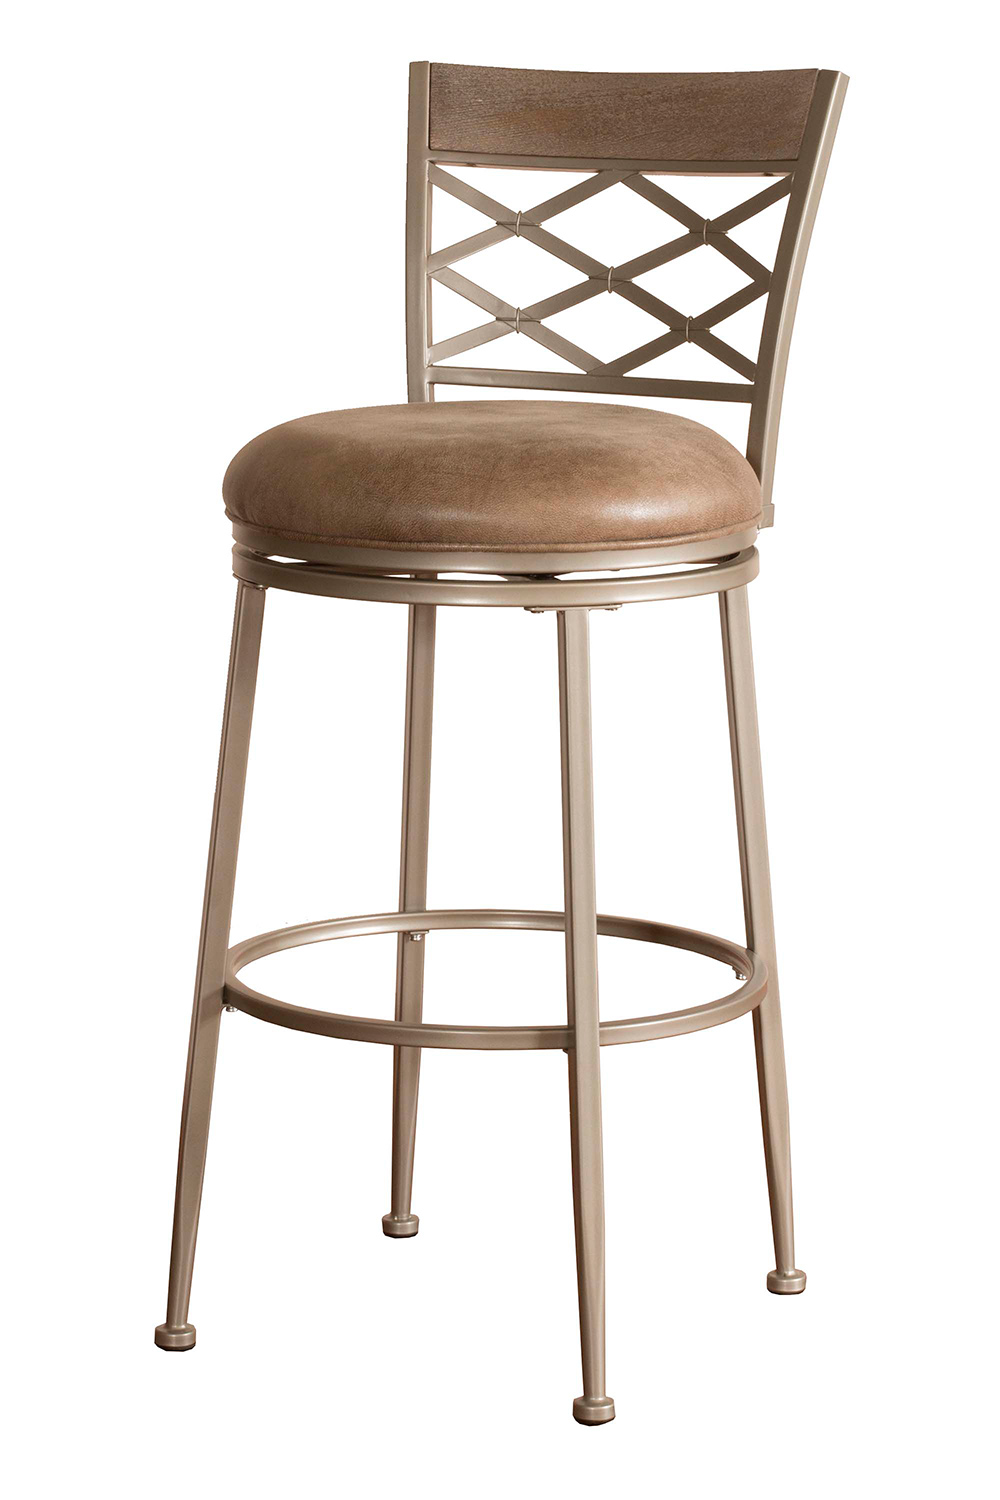 Hillsdale Hutchinson Swivel Counter Stool - Pewter - Aged Gray